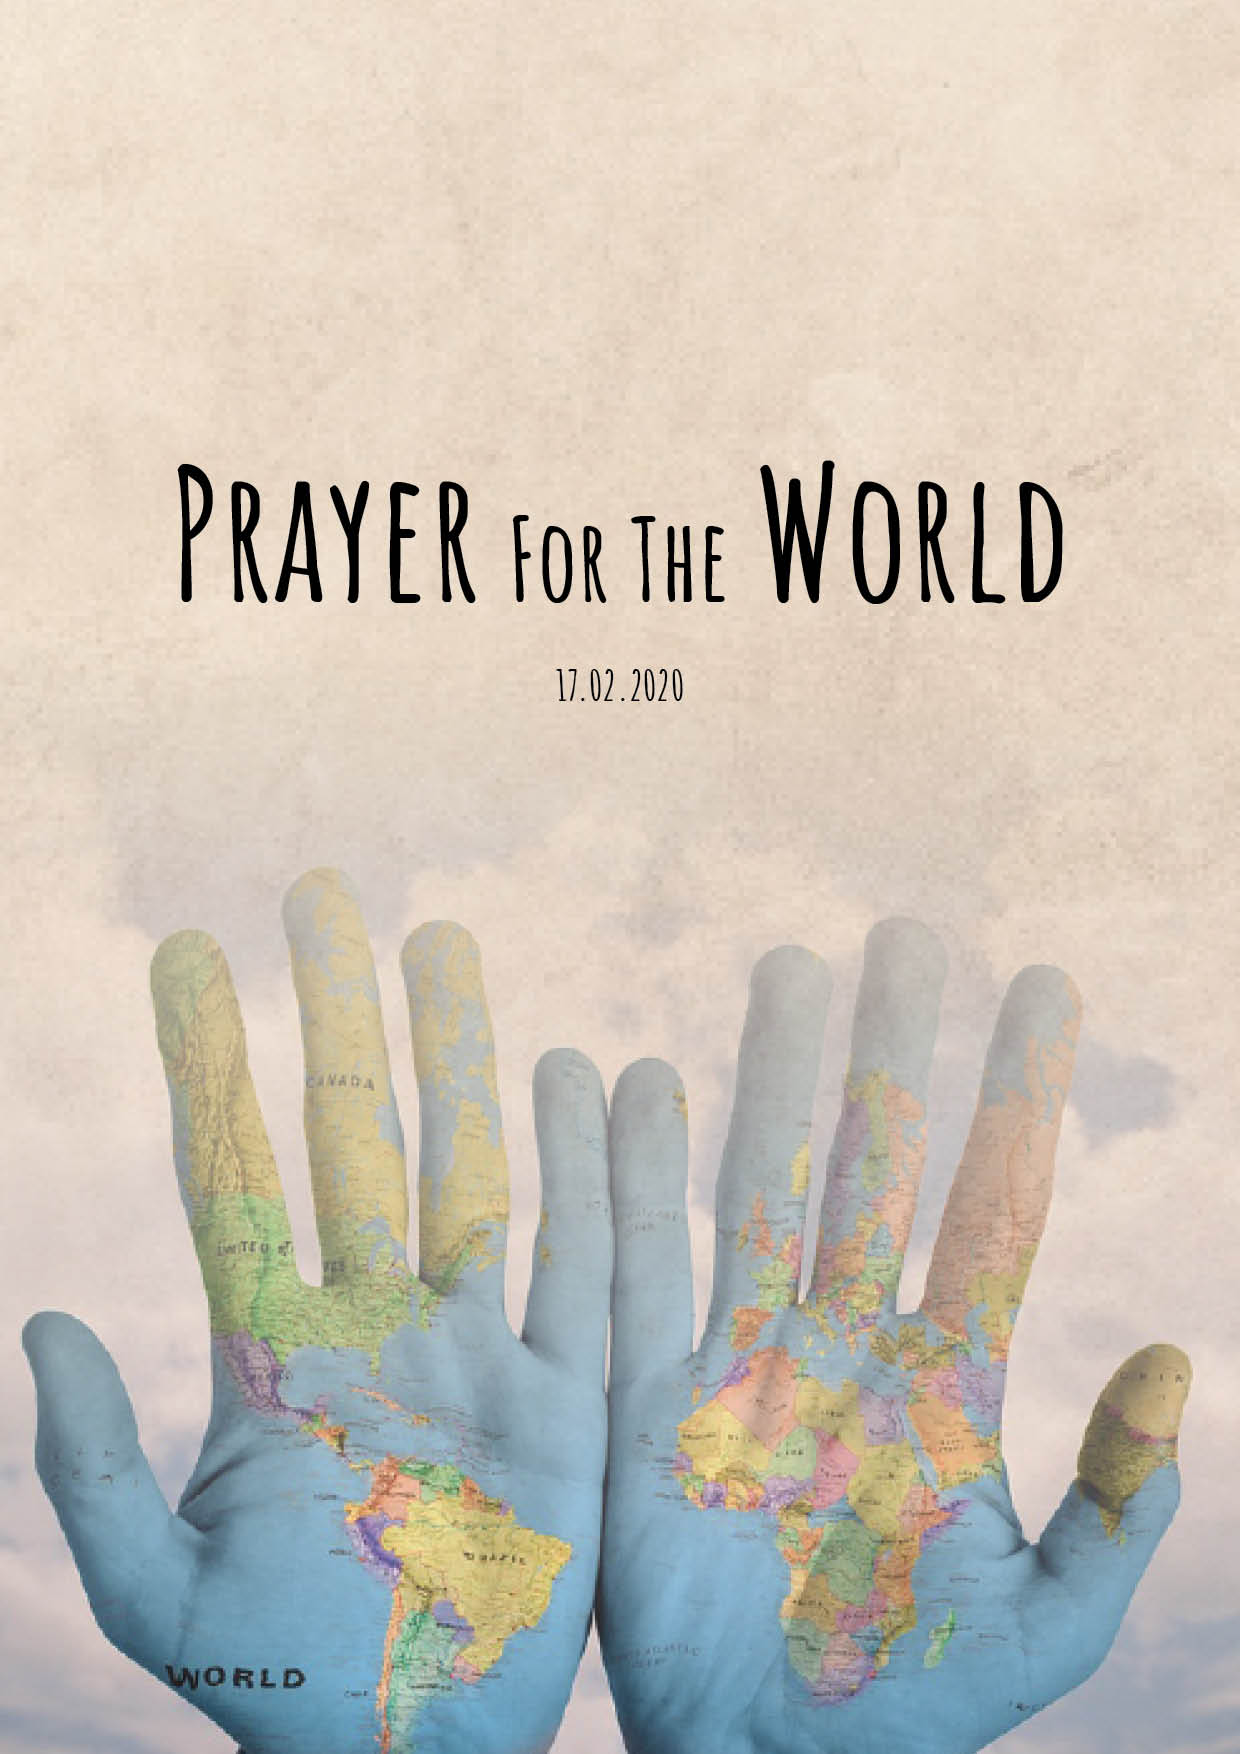 WorldPrayer_17_02.jpg